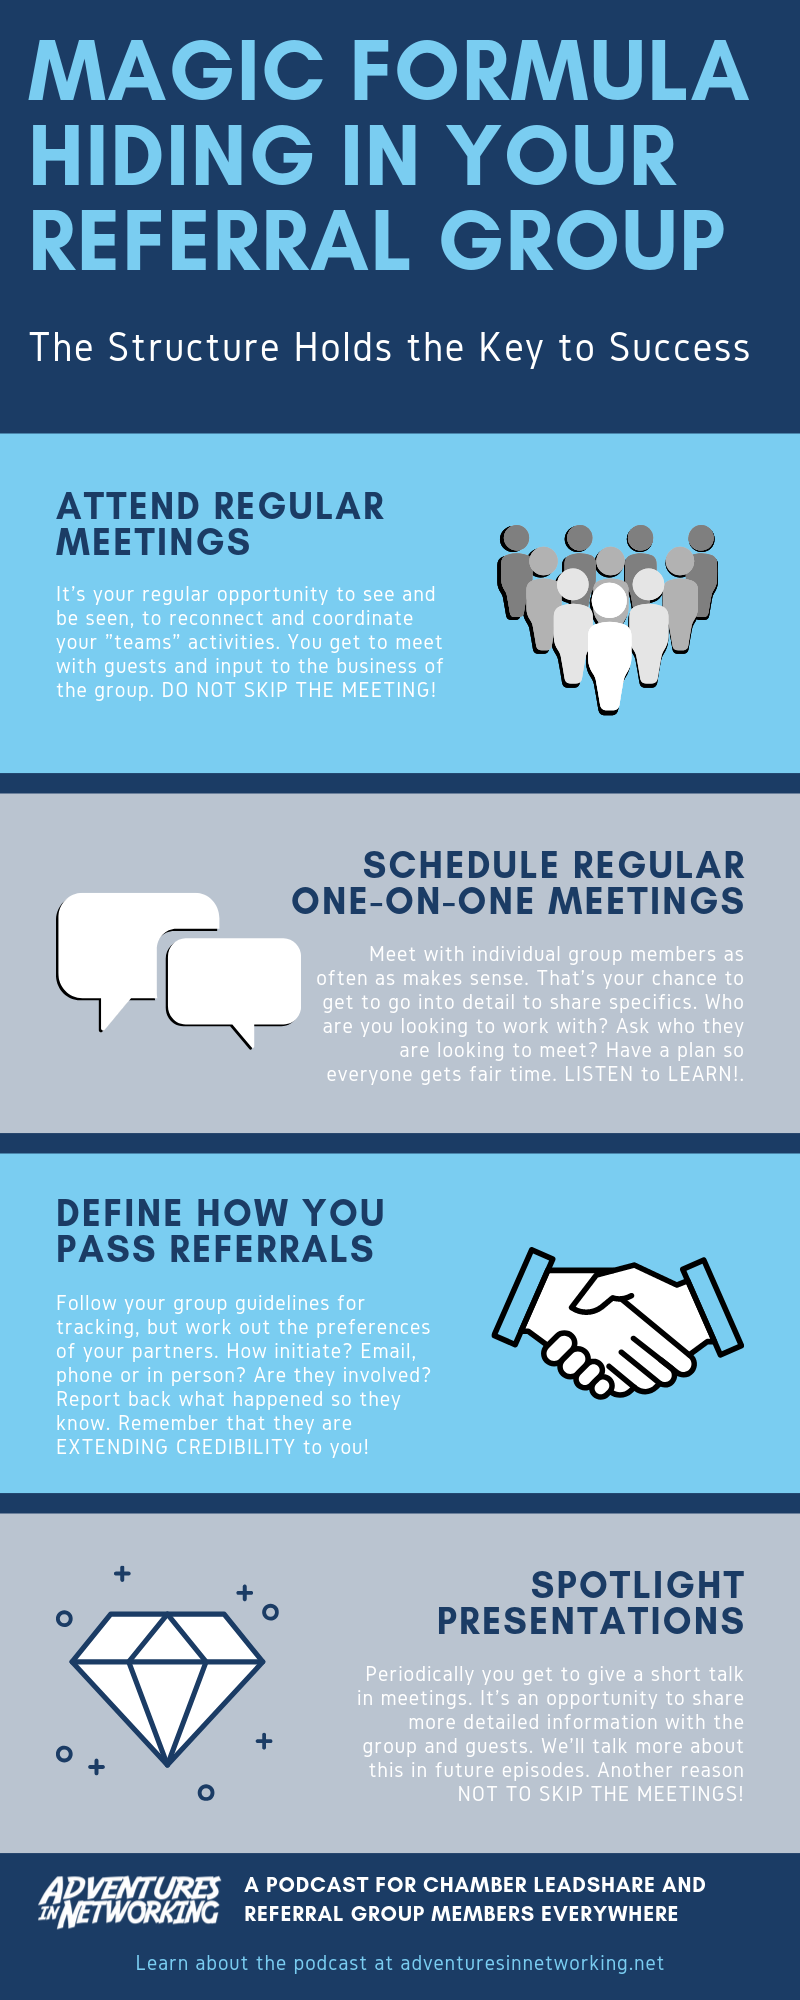 Magic Formula in Referral Groups Infographic